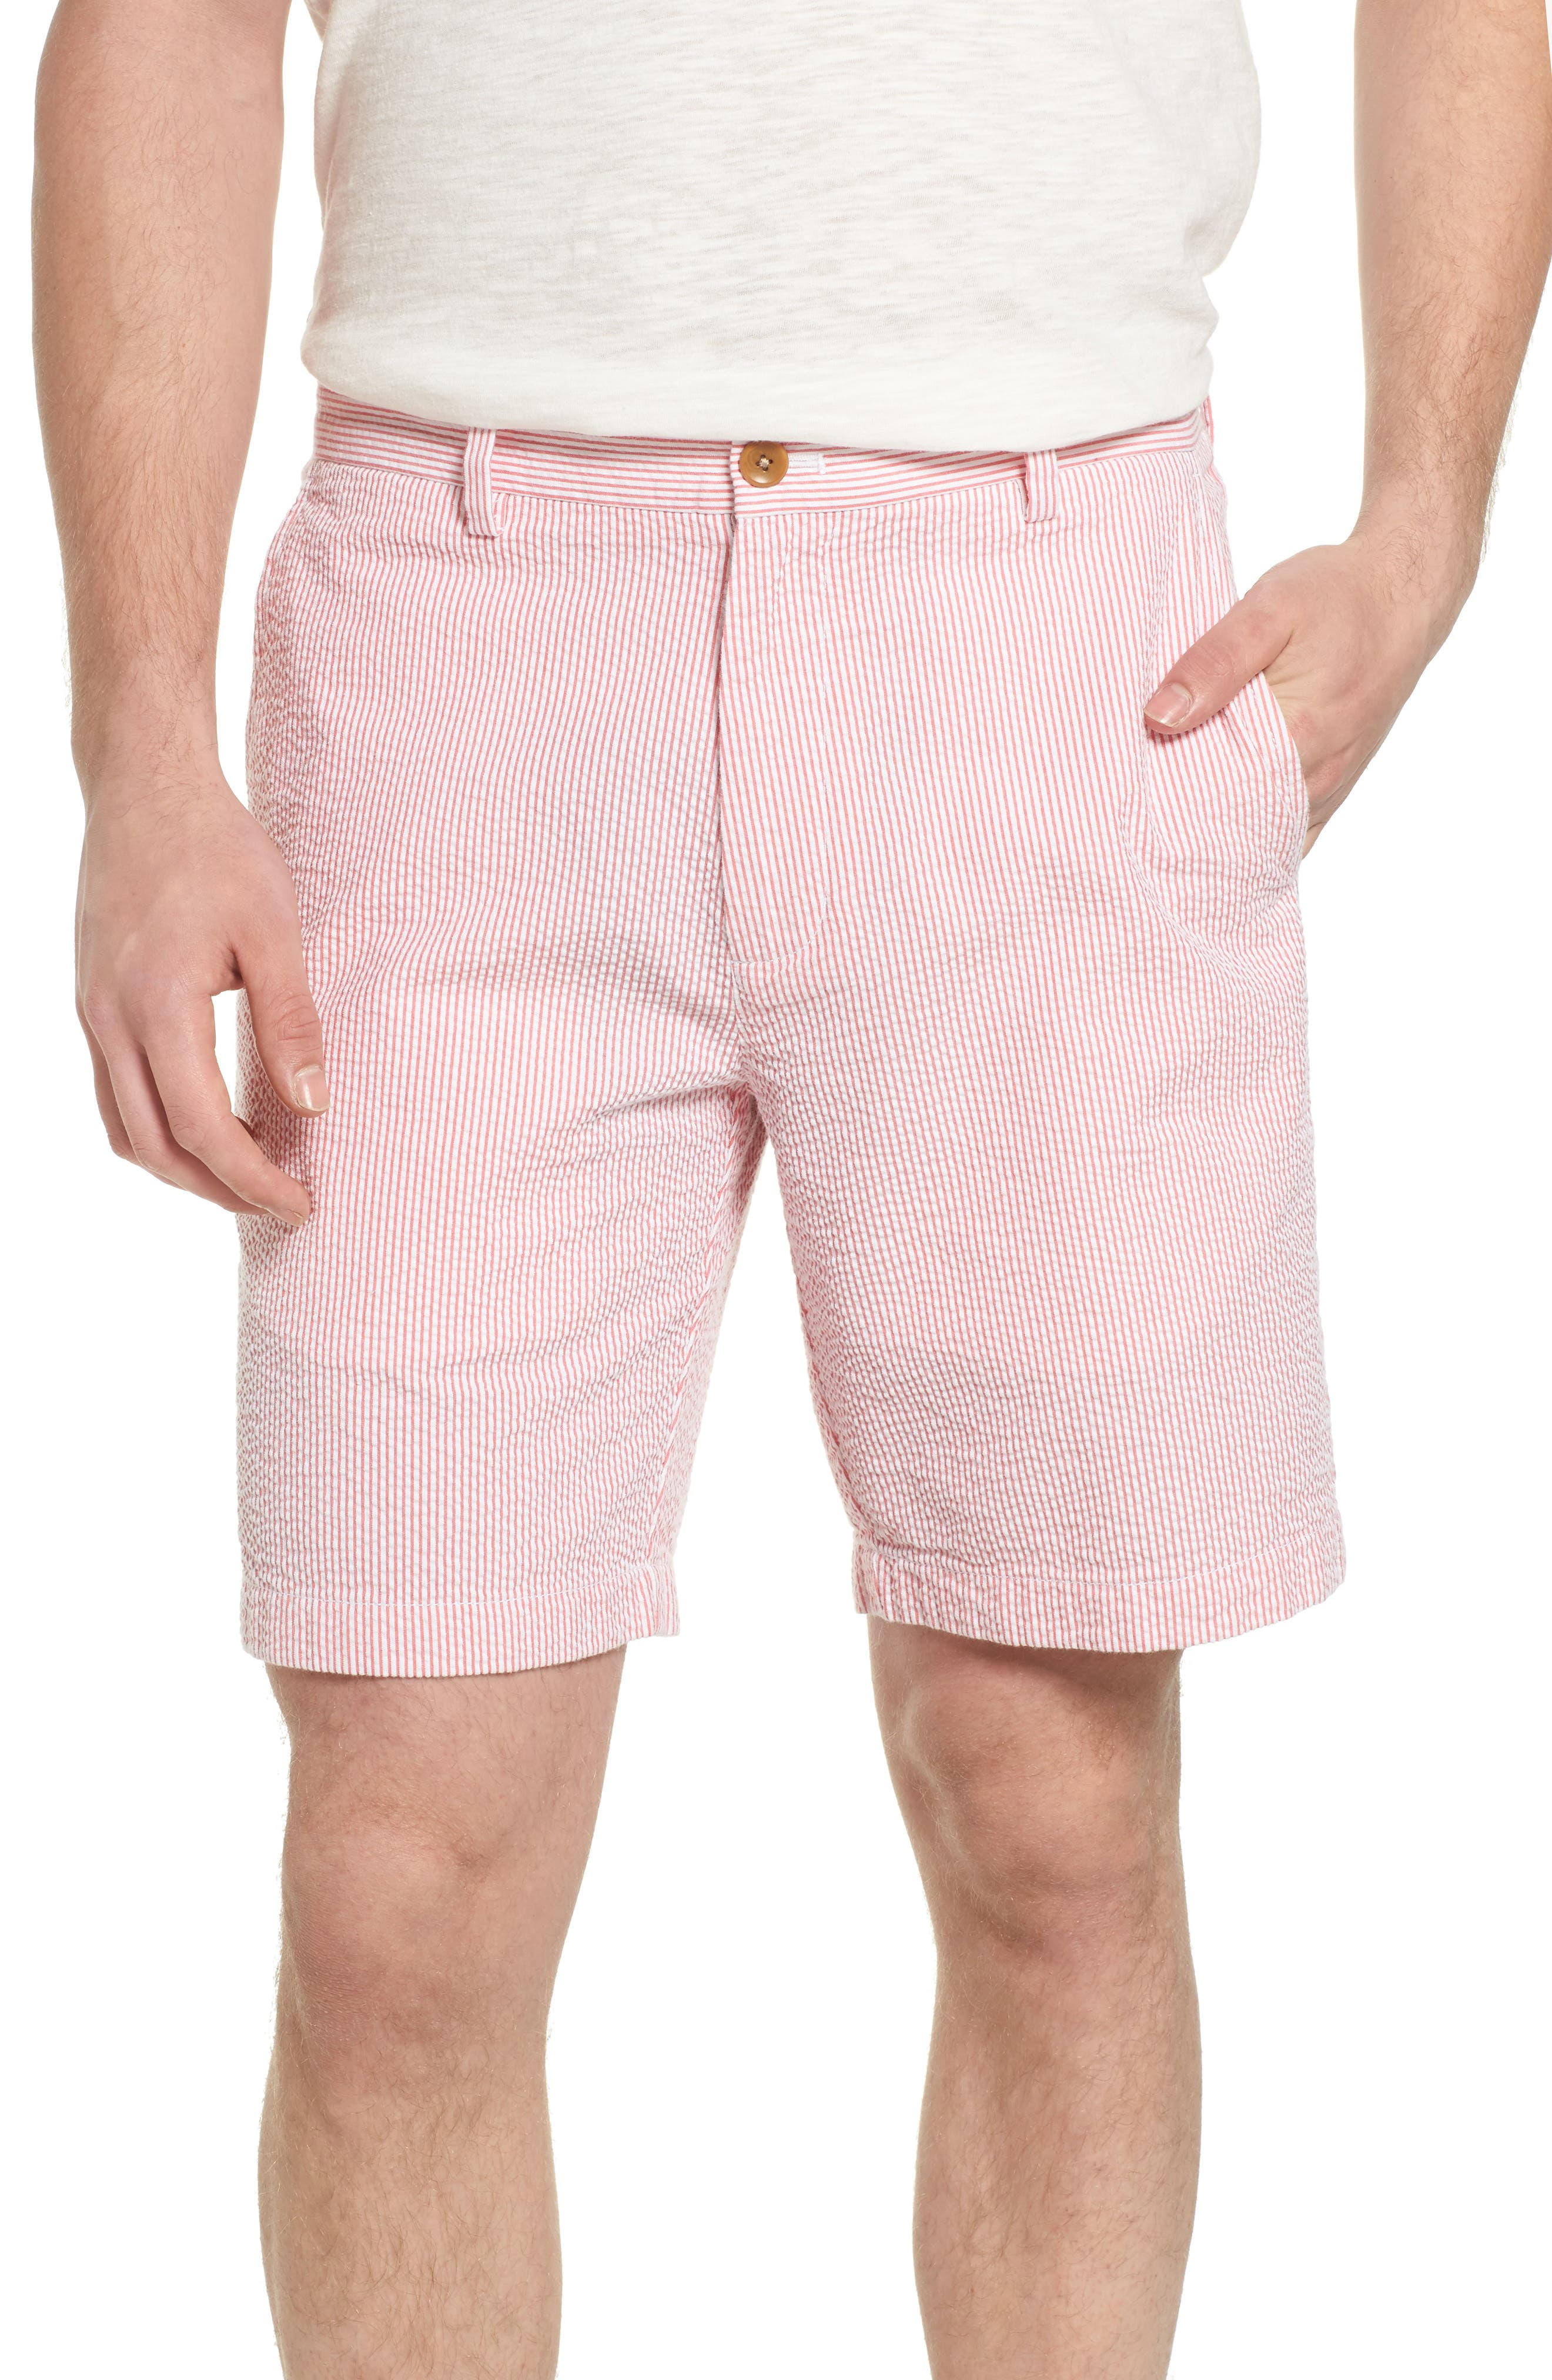 9 Inch Seersucker Shorts,                         Main,                         color, Jetty Red